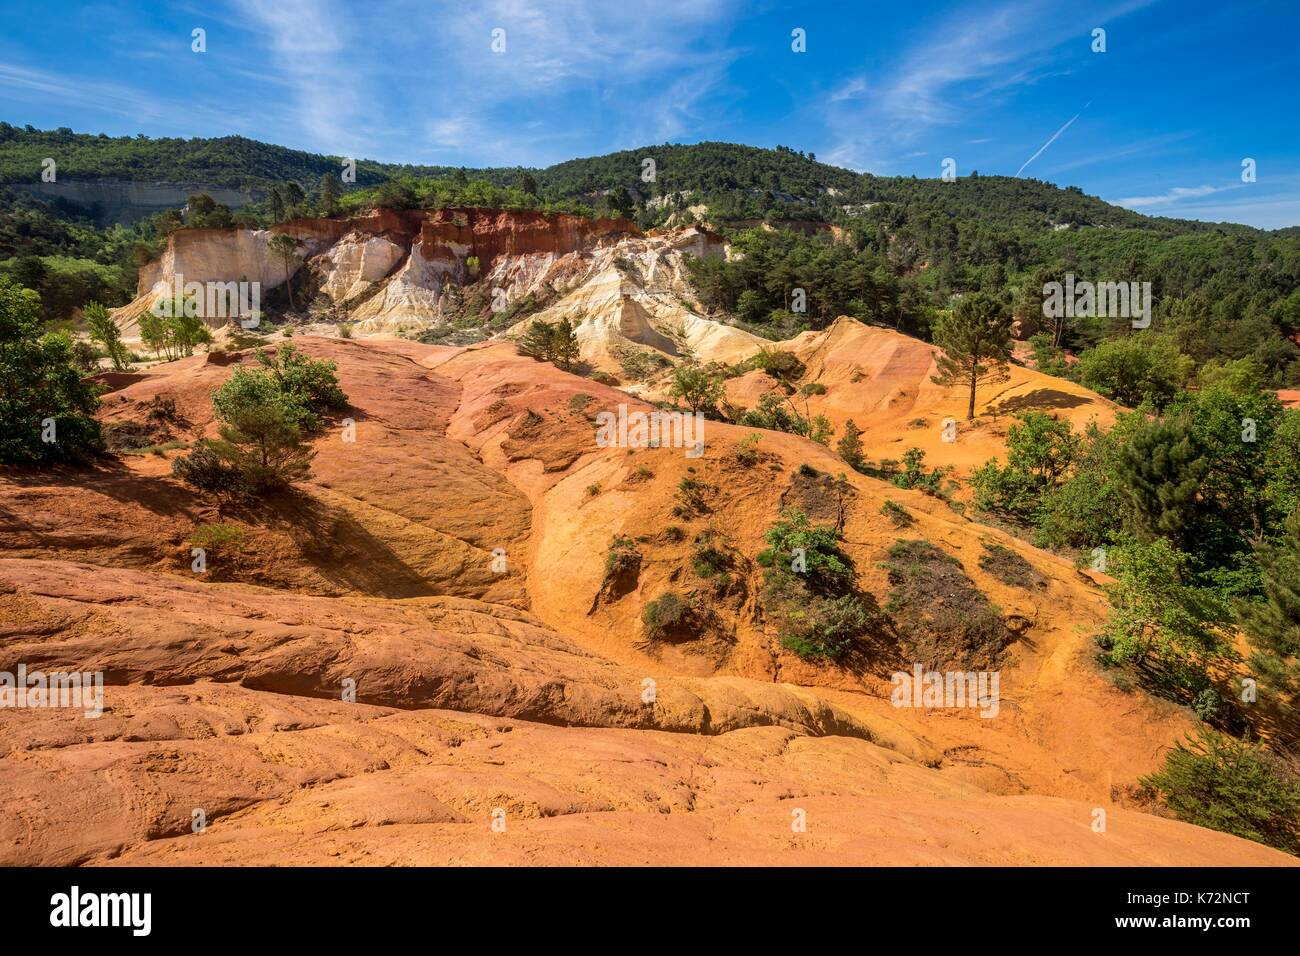 France, Vaucluse, regional natural reserve of Luberon, Rustrel, Provenal Colorado, former careers of ochre - Stock Image